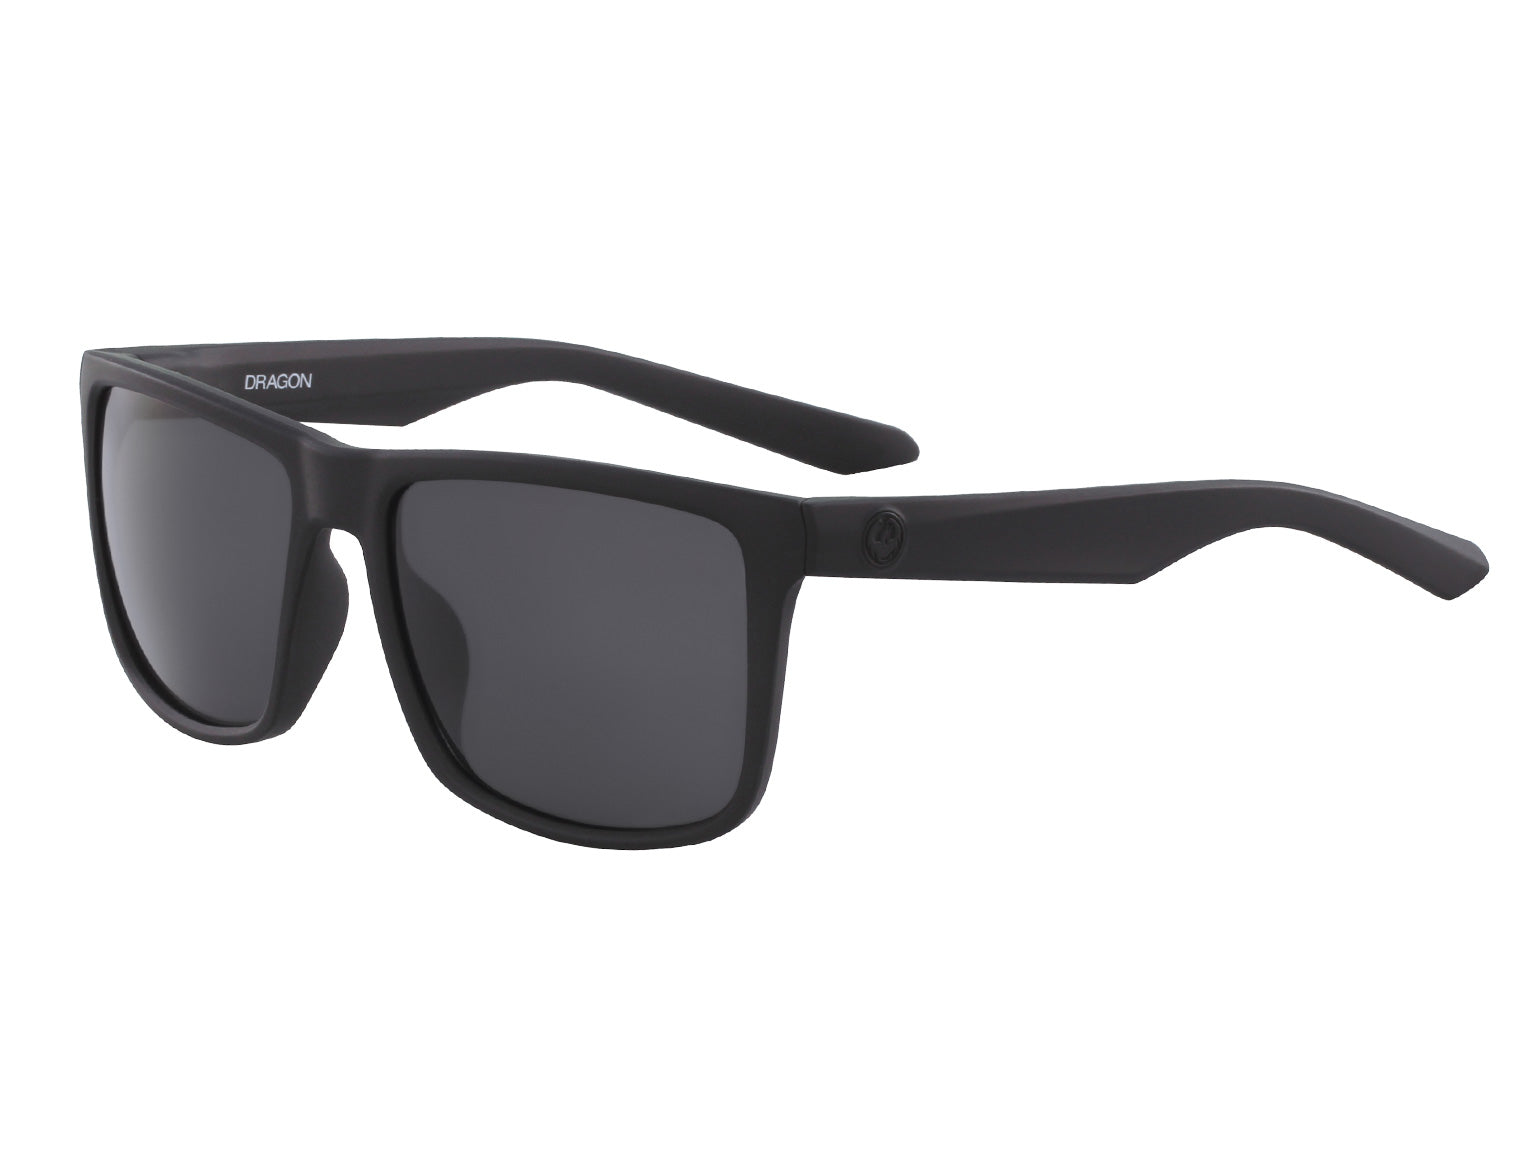 MERIDIEN - Matte Black ; with Lumalens Smoke Lens